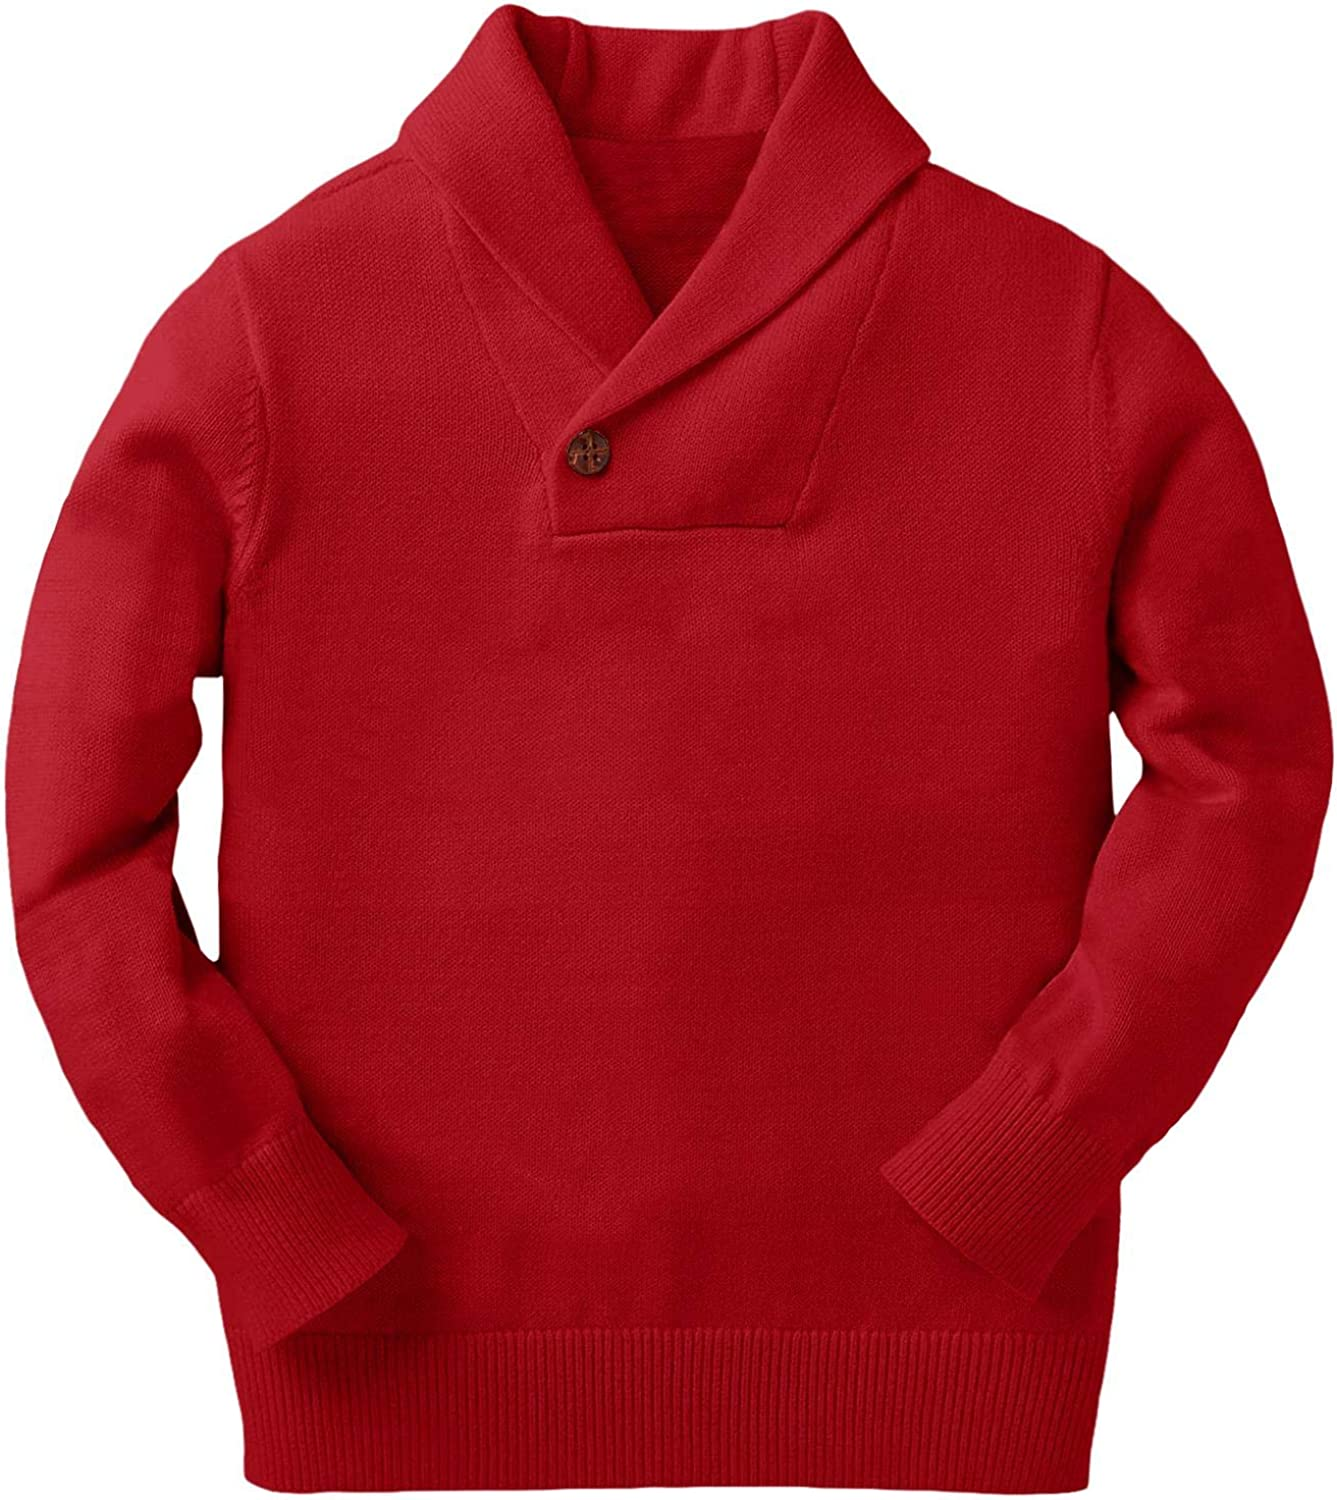 Gioberti Kids and Boys Shawl Collar Pullover Knitted Sweater with Toggle Button Closure